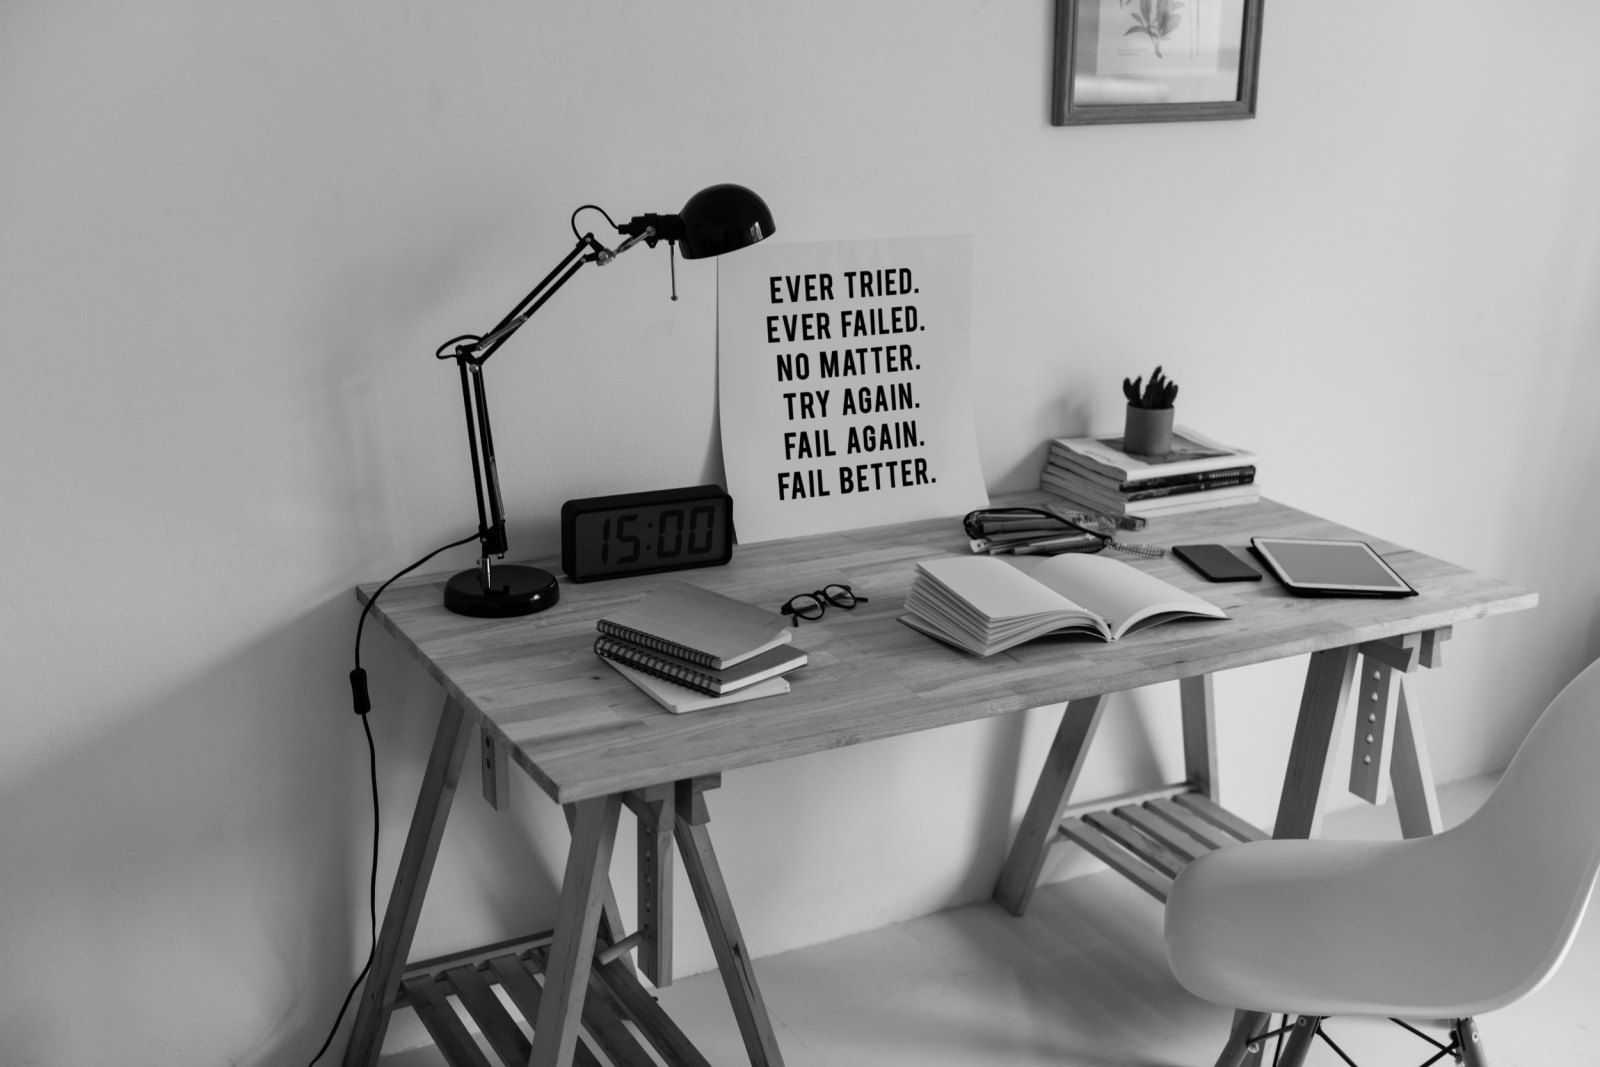 Small home office desk with a determind quote board.